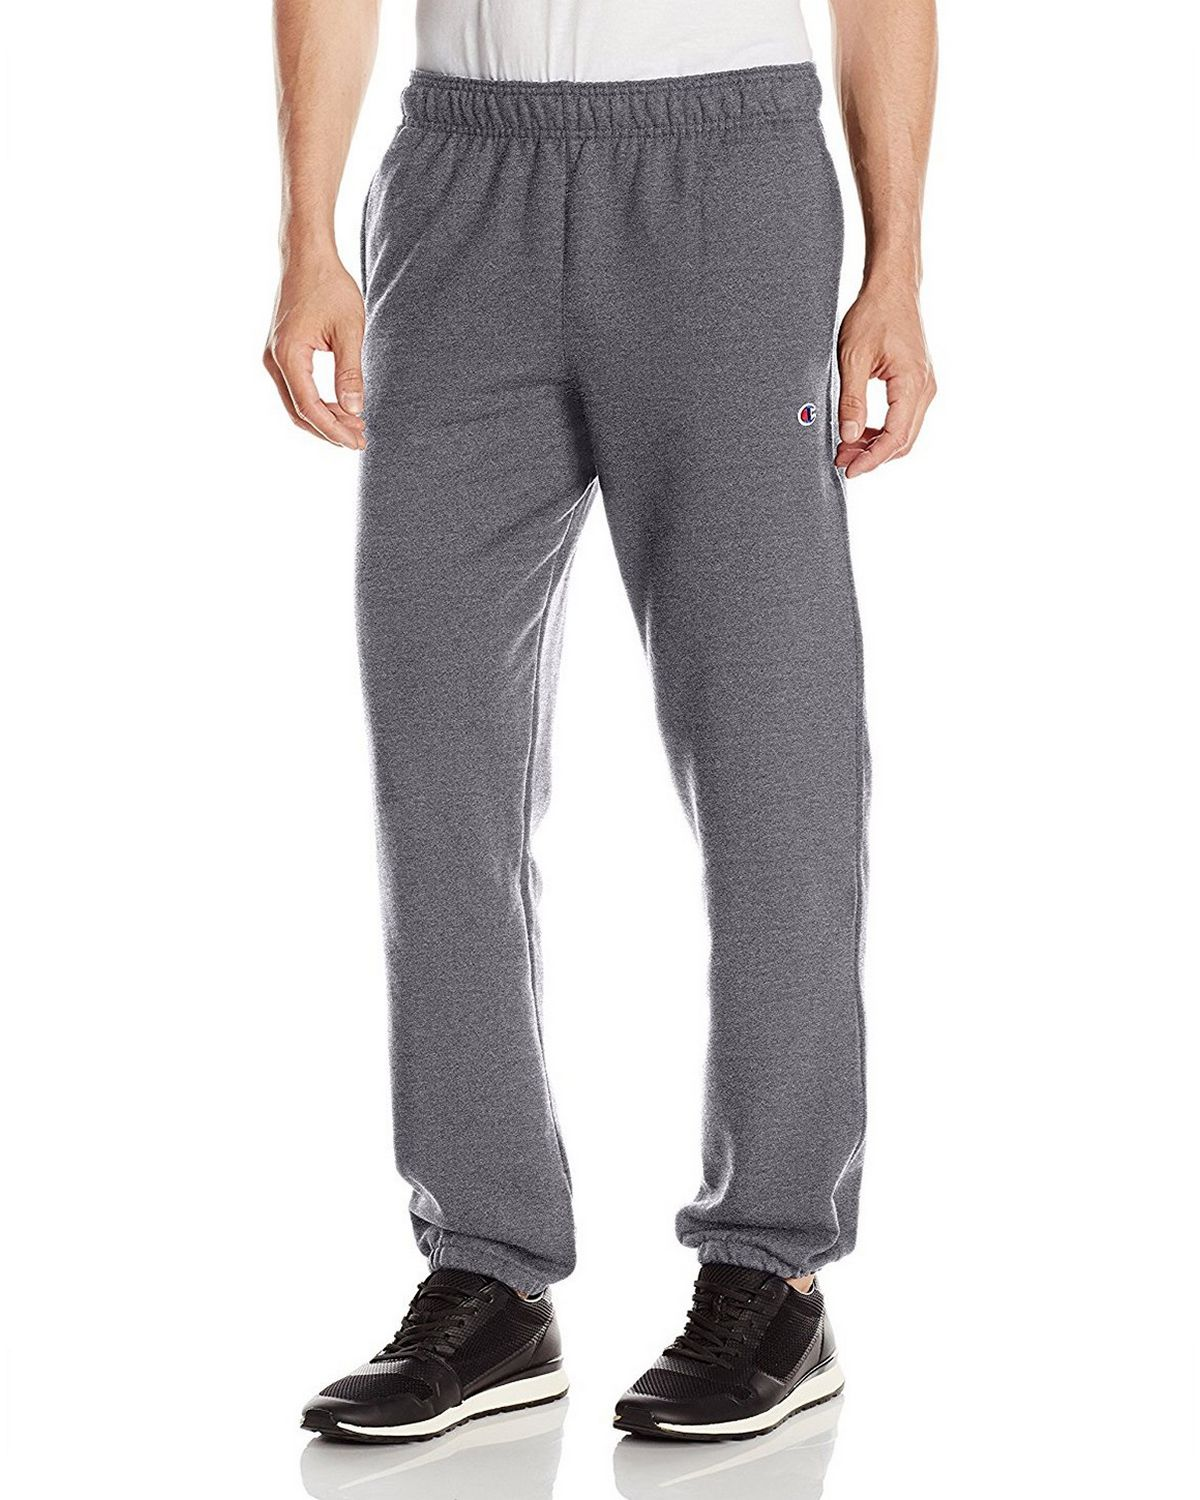 Champion P0894 Mens Powerblend Fleece Pants - Granite Heather - M P0894